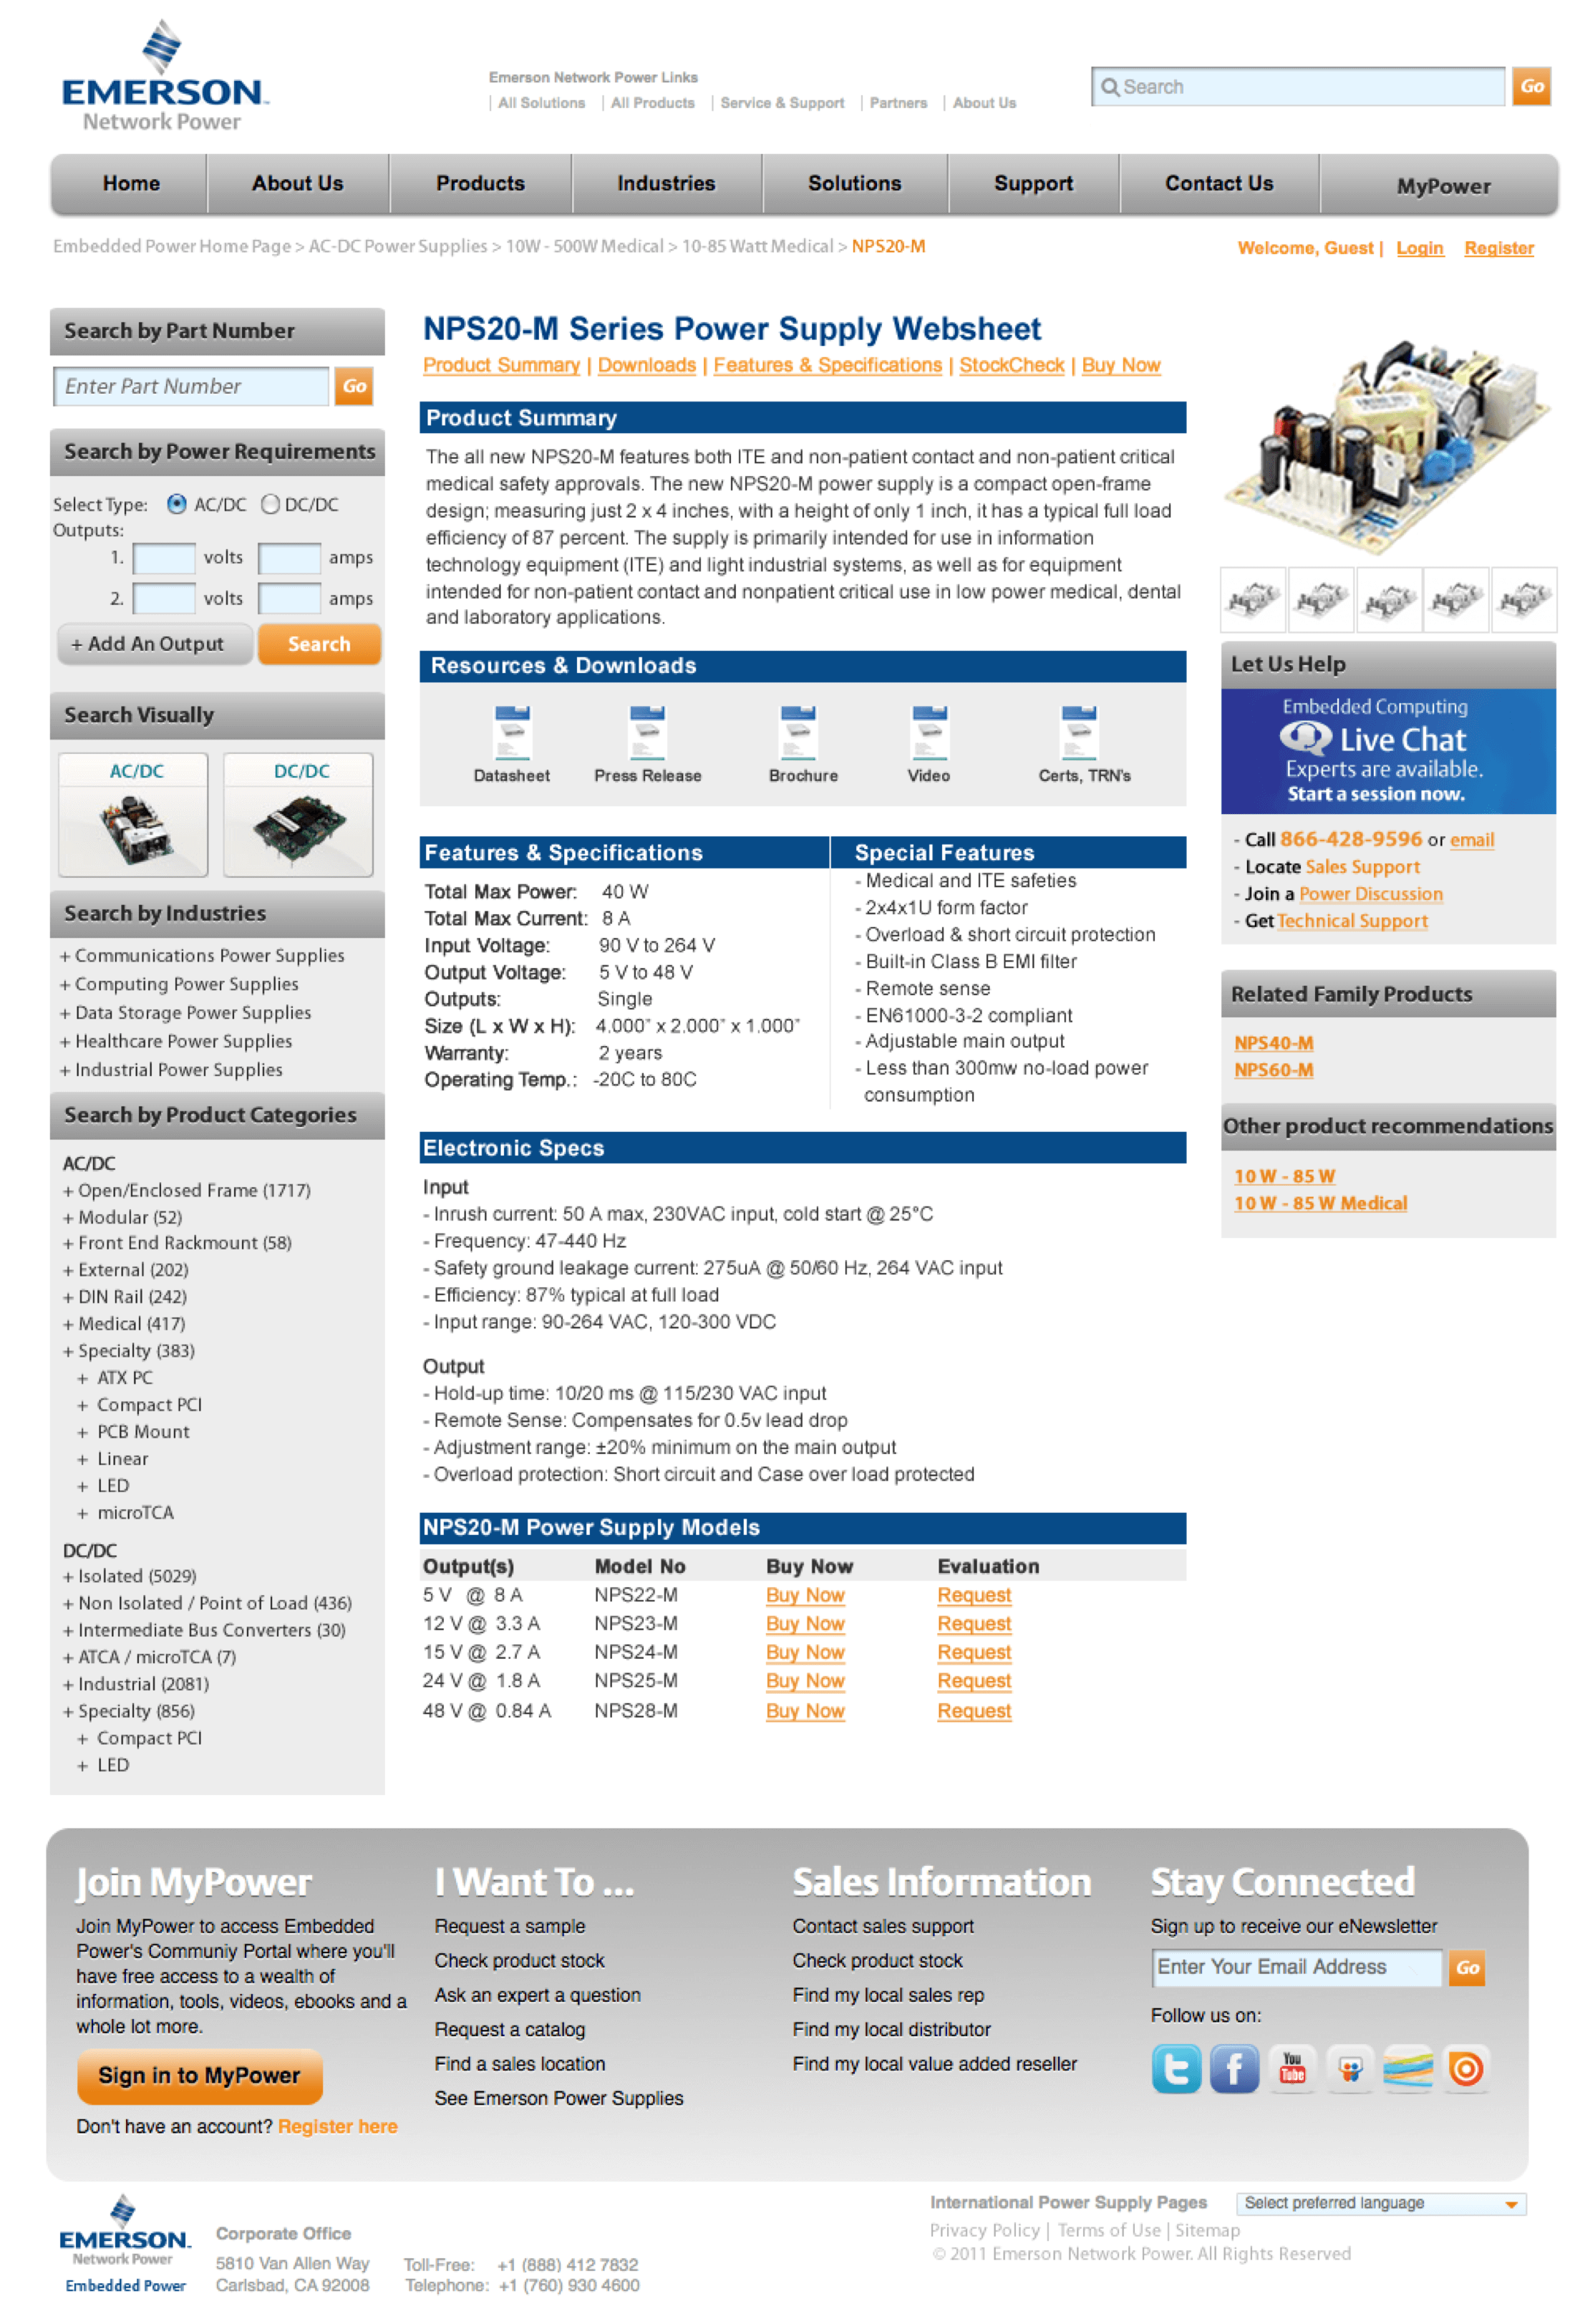 emerson-embedded-ac-dc-power-supplies-website-design-product-NPS20-M-M